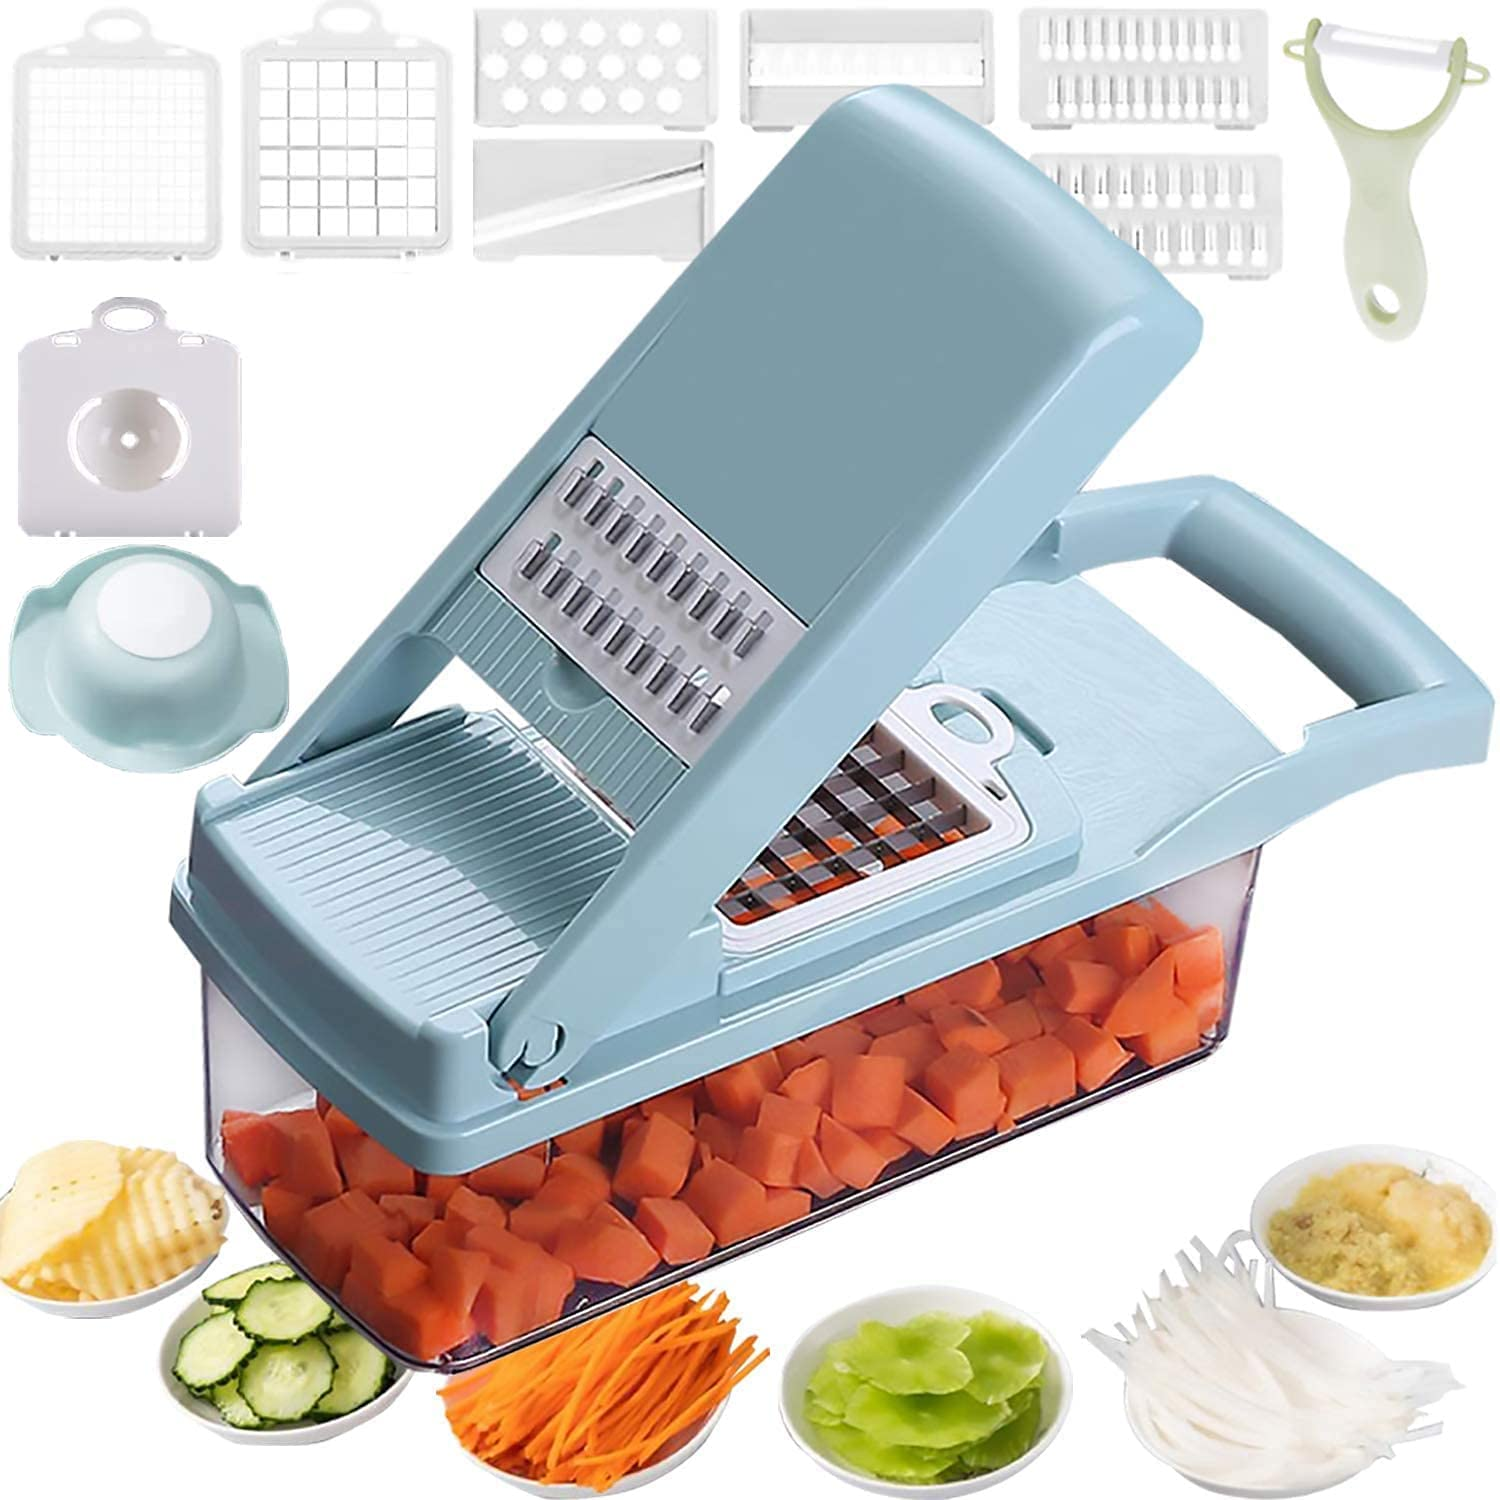 12 in 1 Vegetable Chopper, Heavy Duty Mandoline Slicer Potato Onion Chopper Food Chopper Veggie Chopper with Vegetable Peeler, Hand Guard and Container (Blue)